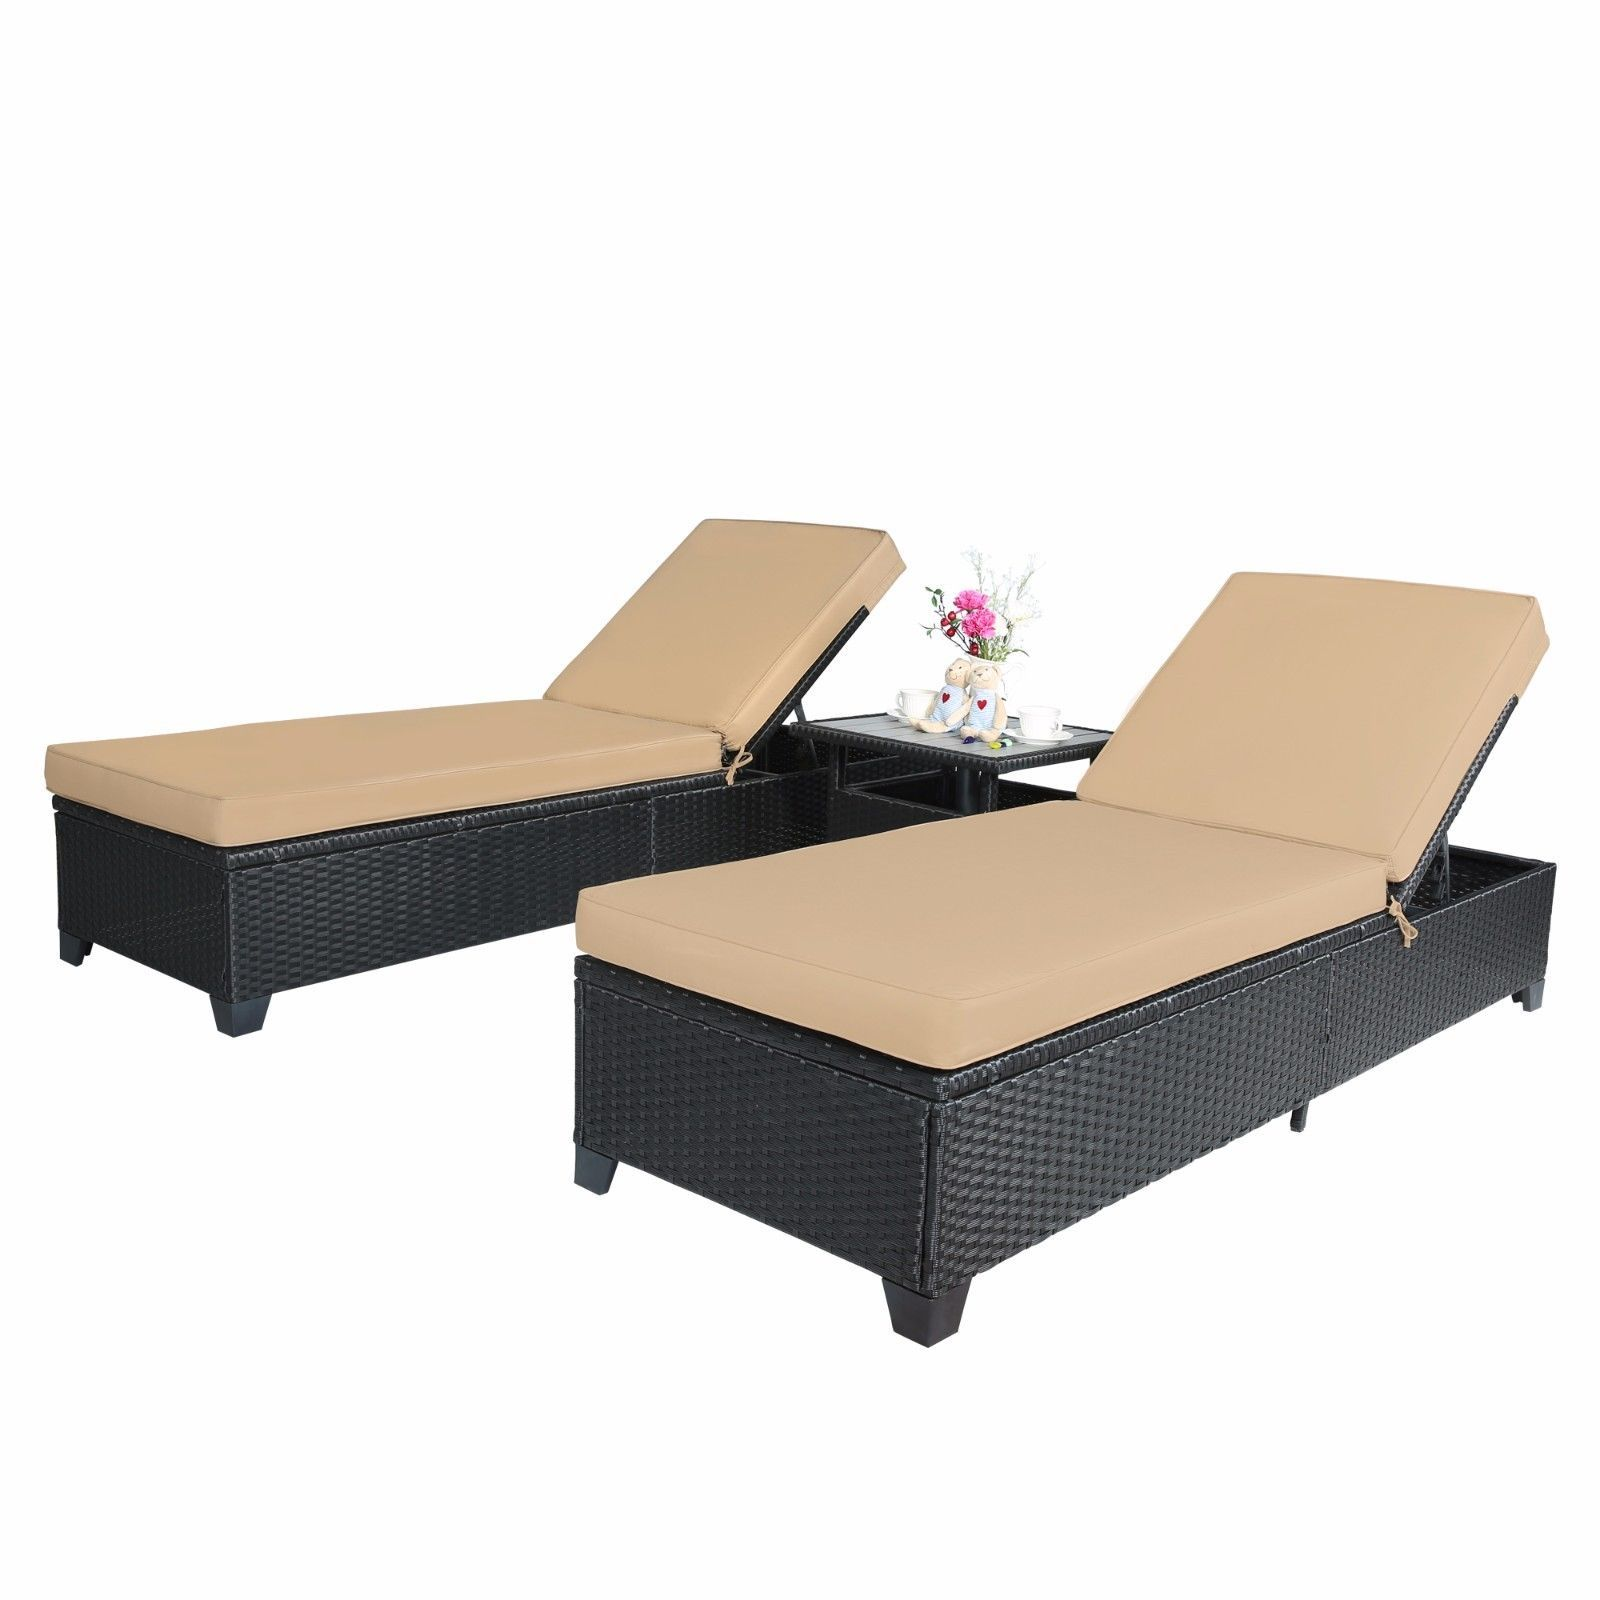 3 PC Outdoor Rattan Wicker Chaise Lounge Adjustable Garden Pool Chairs and Table